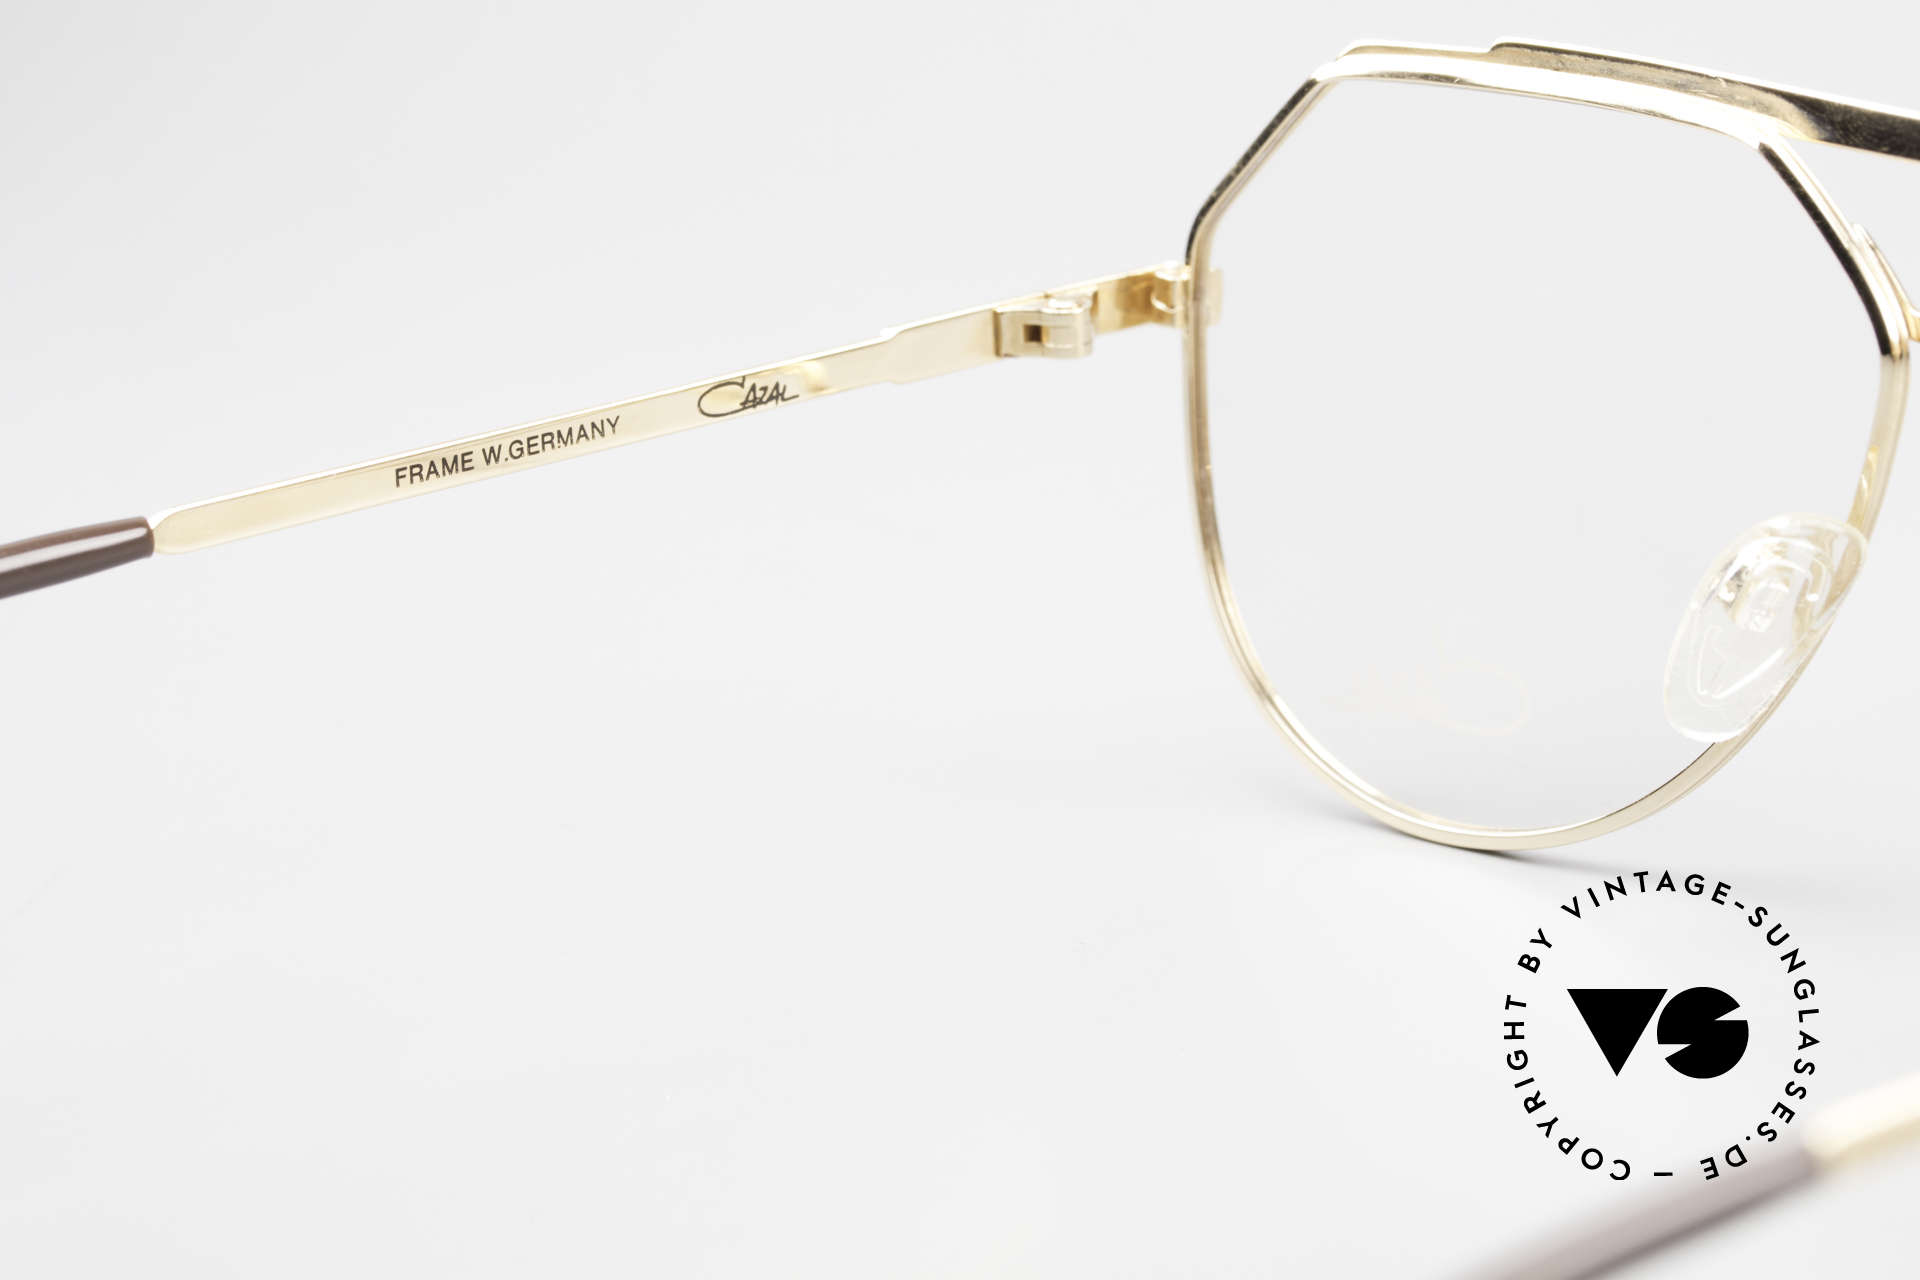 Cazal 733 Old Cazal Aviator Eyeglasses, DEMO lenses should be replaced with prescriptions, Made for Men